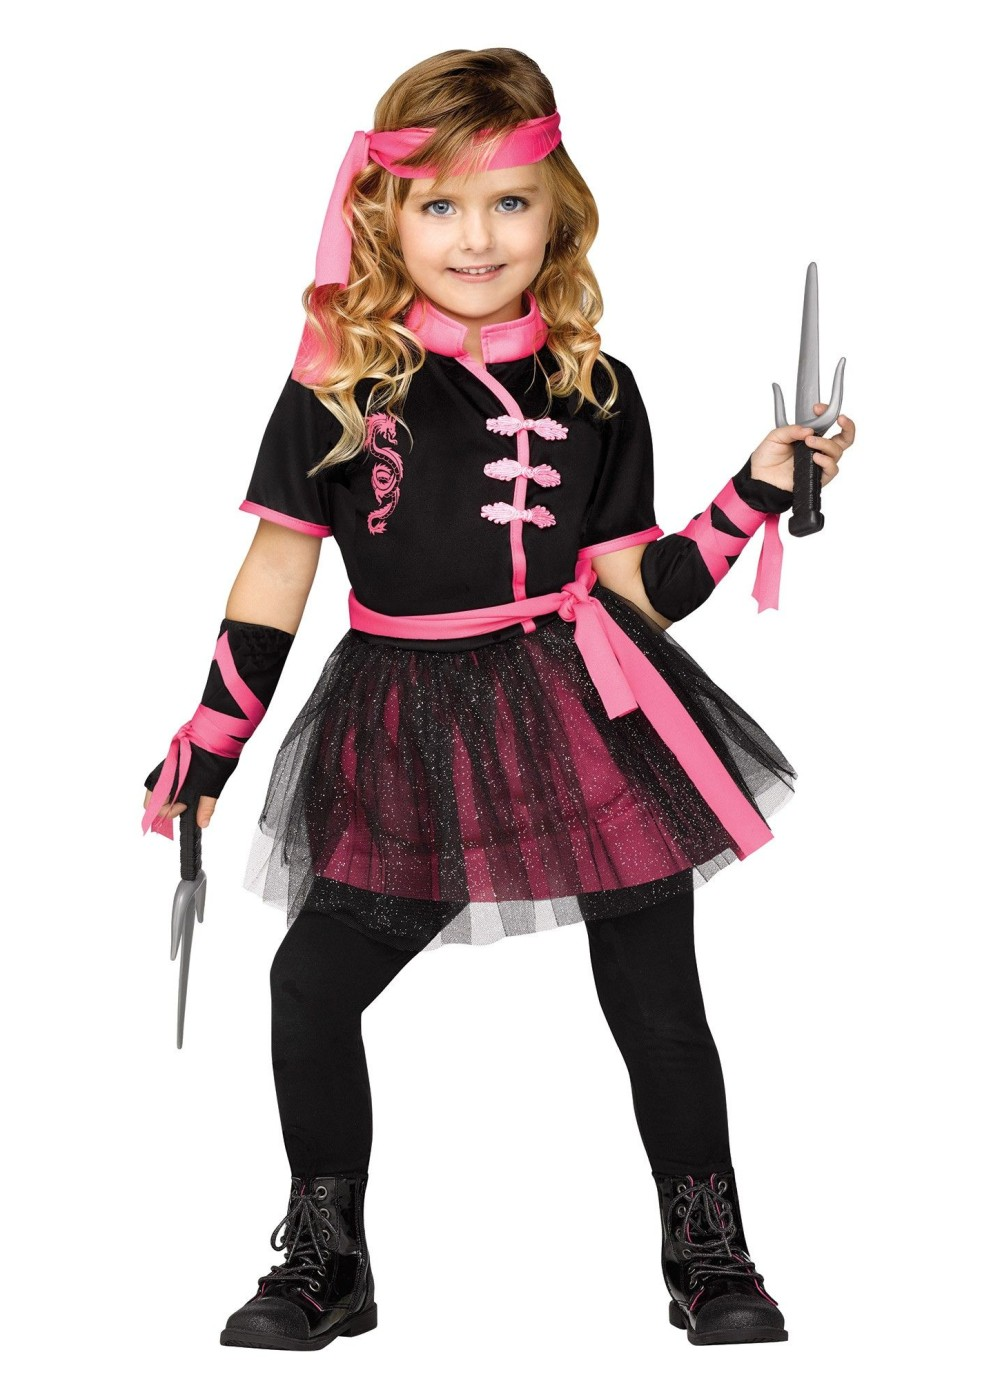 Ninja Miss Girls Costume - Ninja Costumes